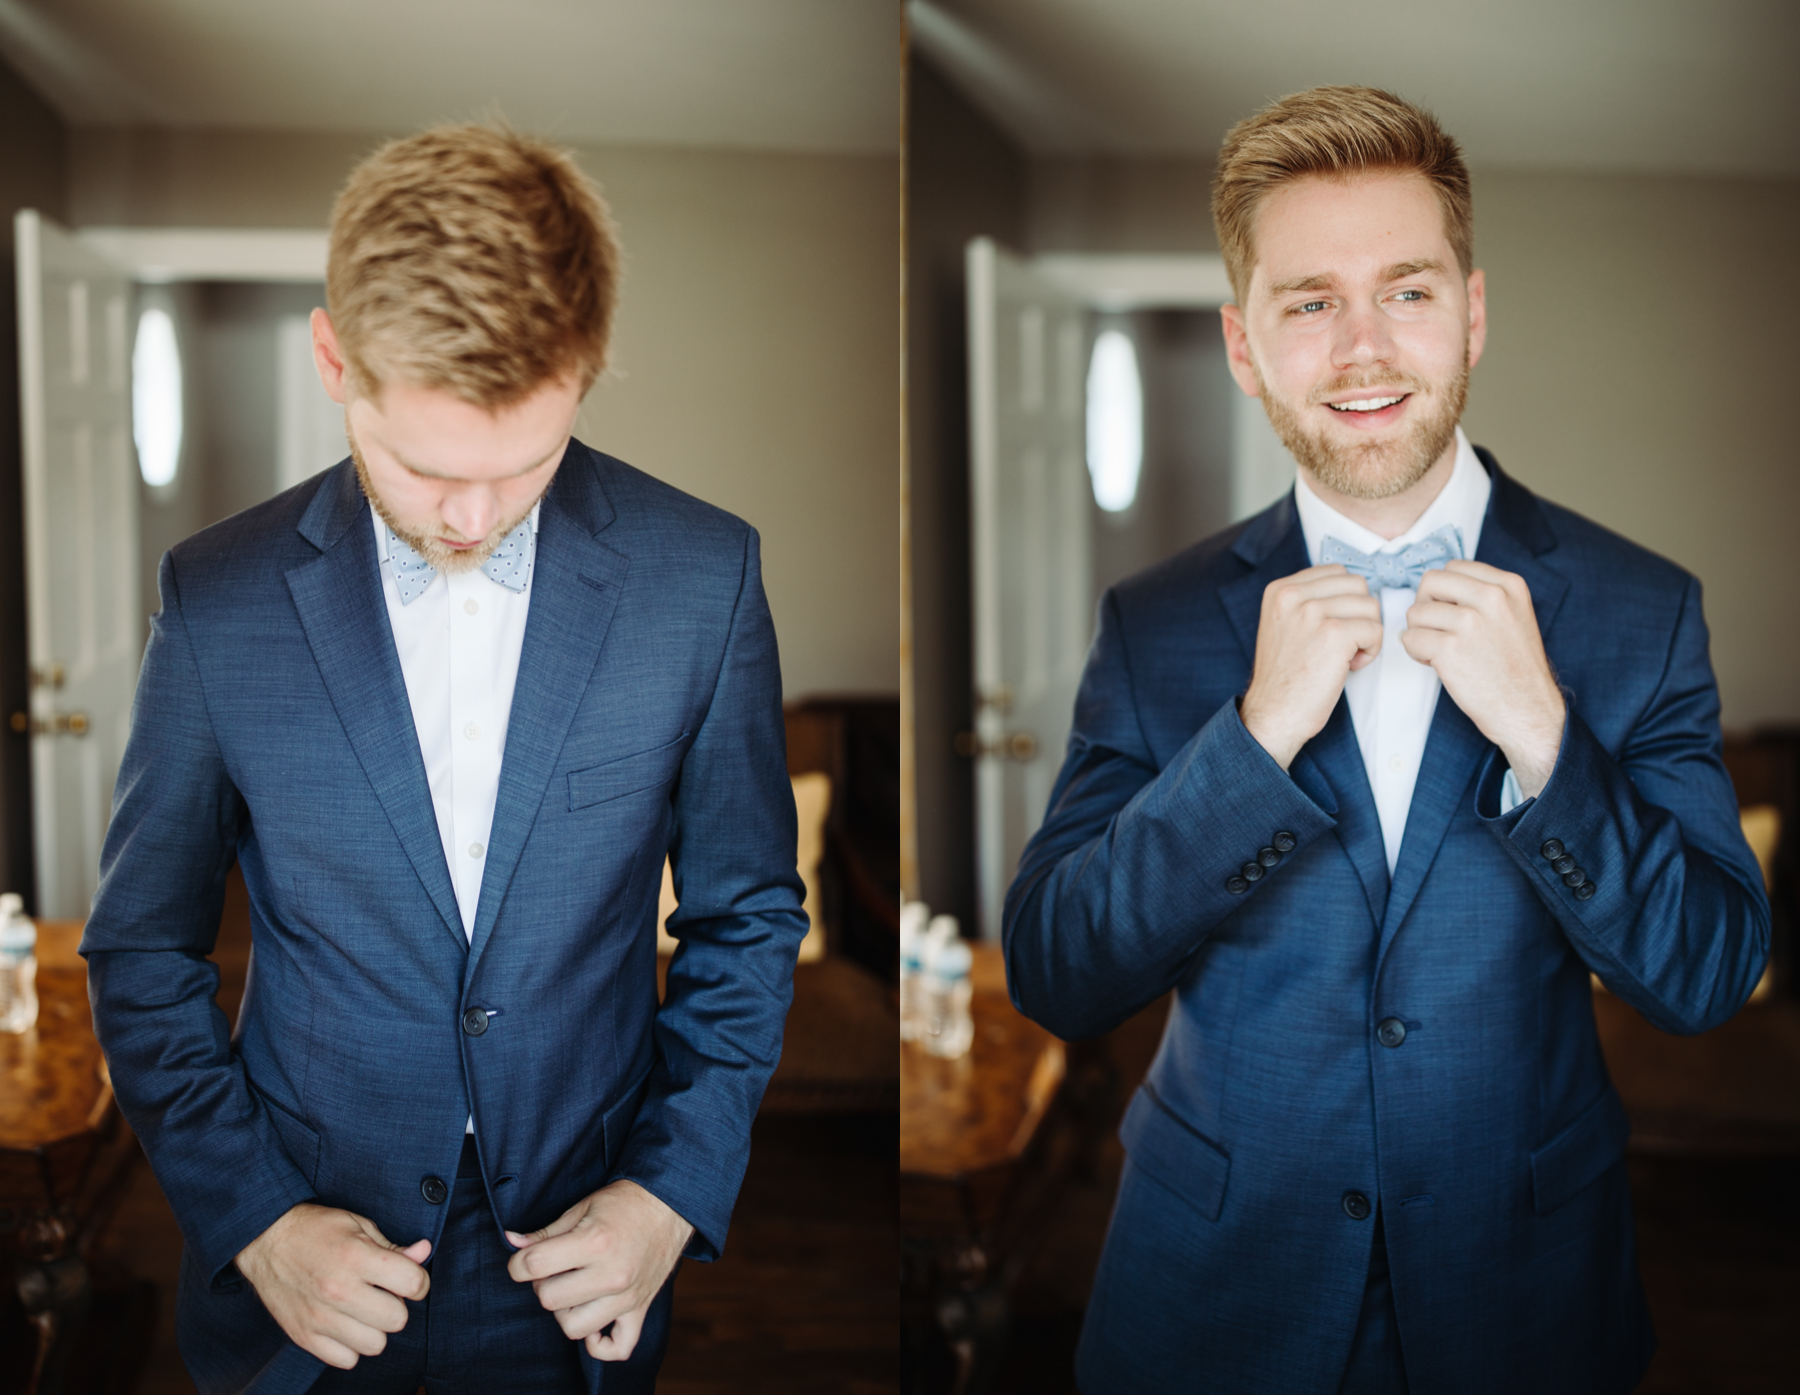 groomsmen portraits at a Sunny summer wedding at Dara's Garden in Knoxville, Tennessee